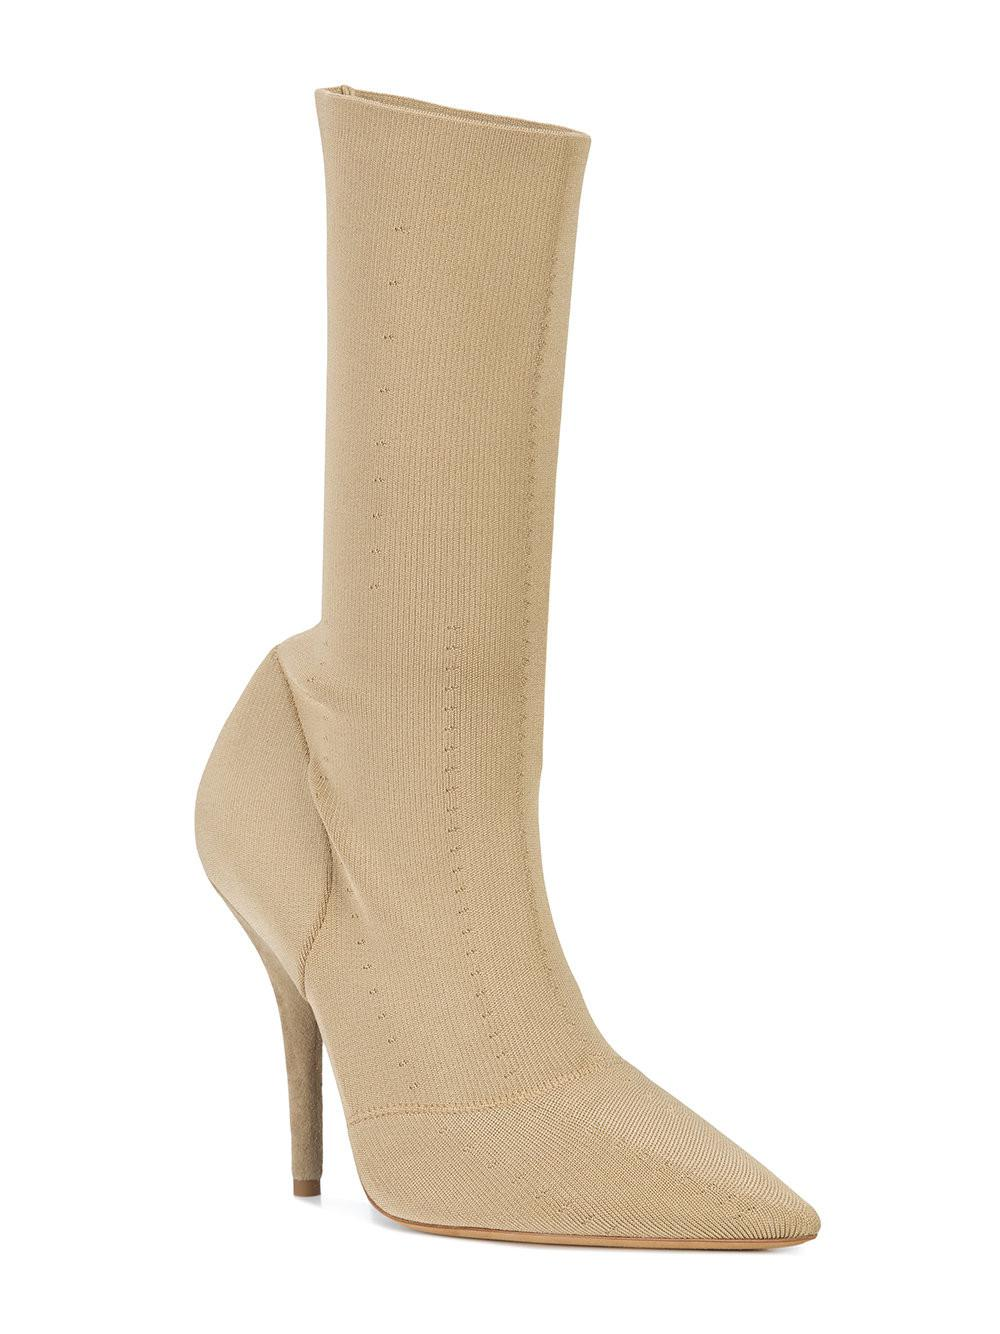 bf8250bc888 Lyst - Yeezy Knit Ankle Boots in Natural - Save 50%